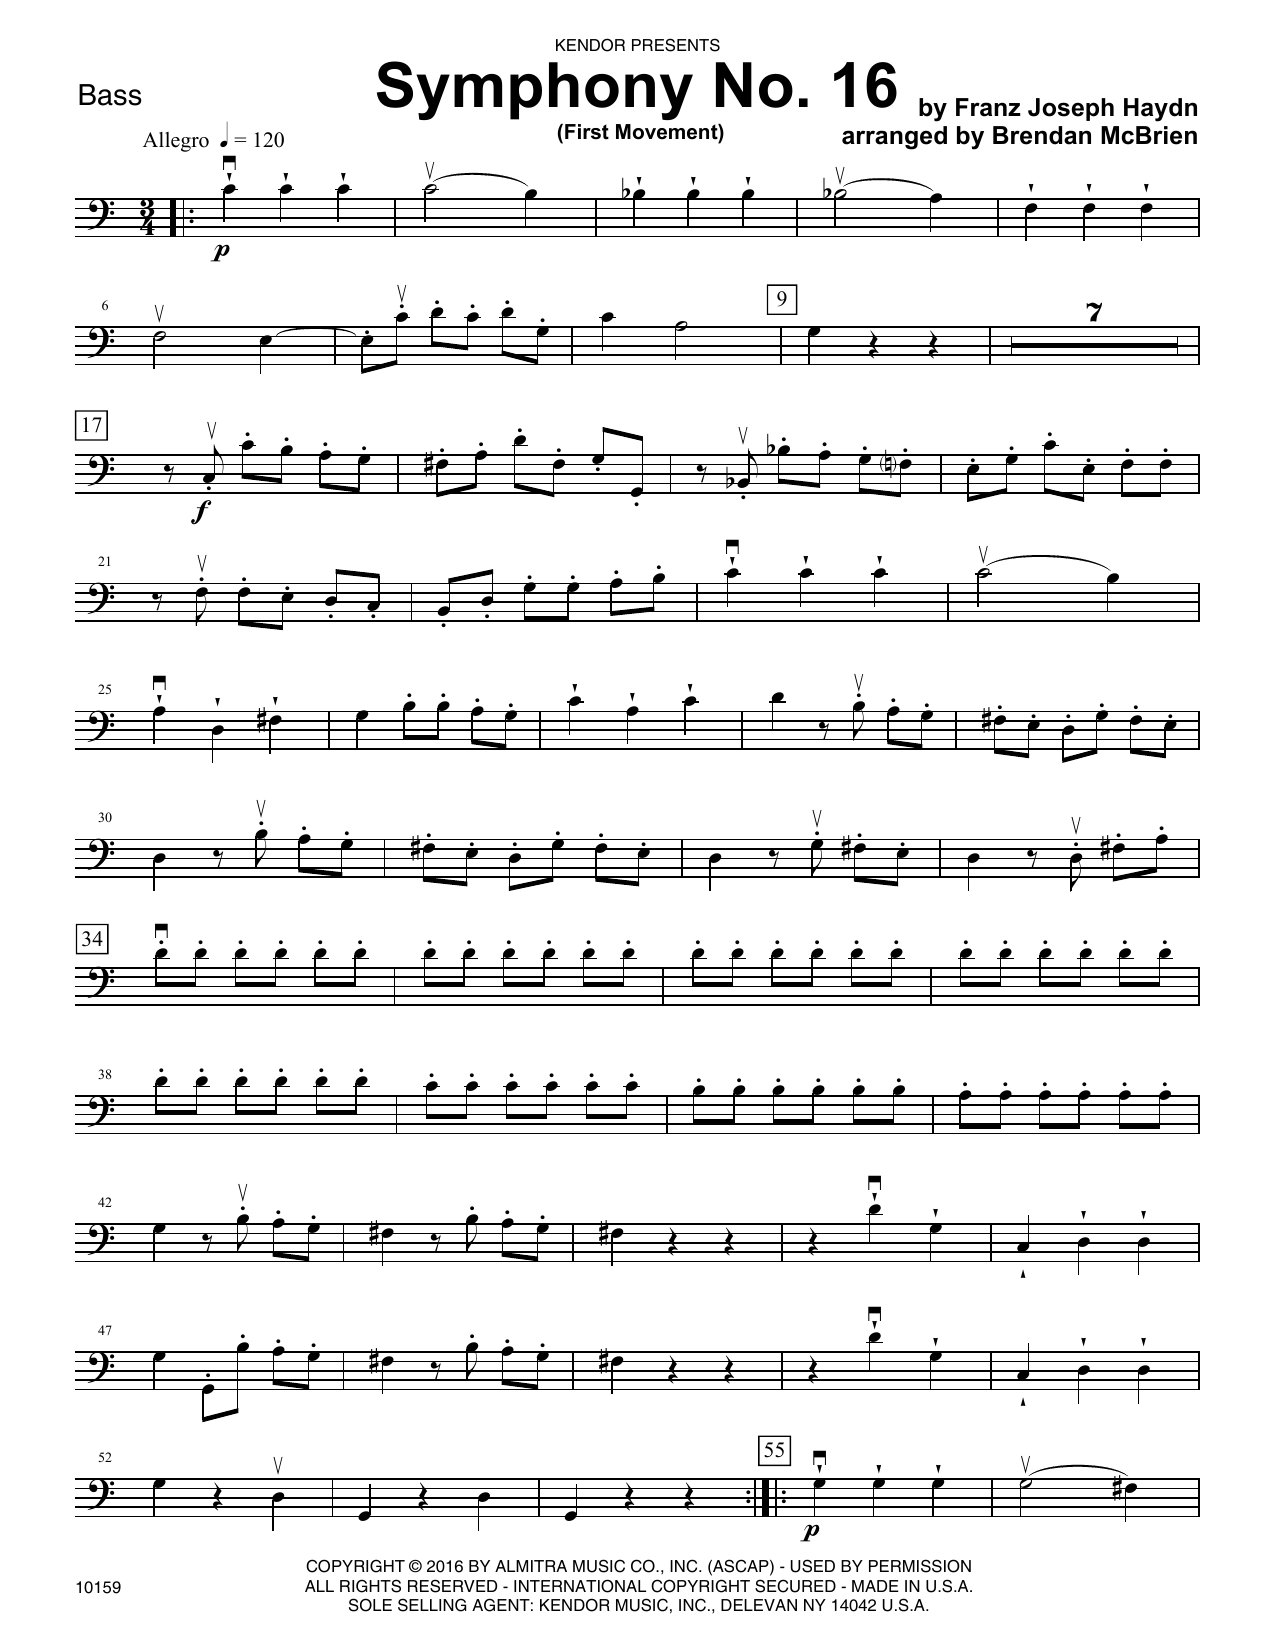 Brian McBrien Symphony No. 16 (First Movement) - Bass sheet music notes and chords. Download Printable PDF.